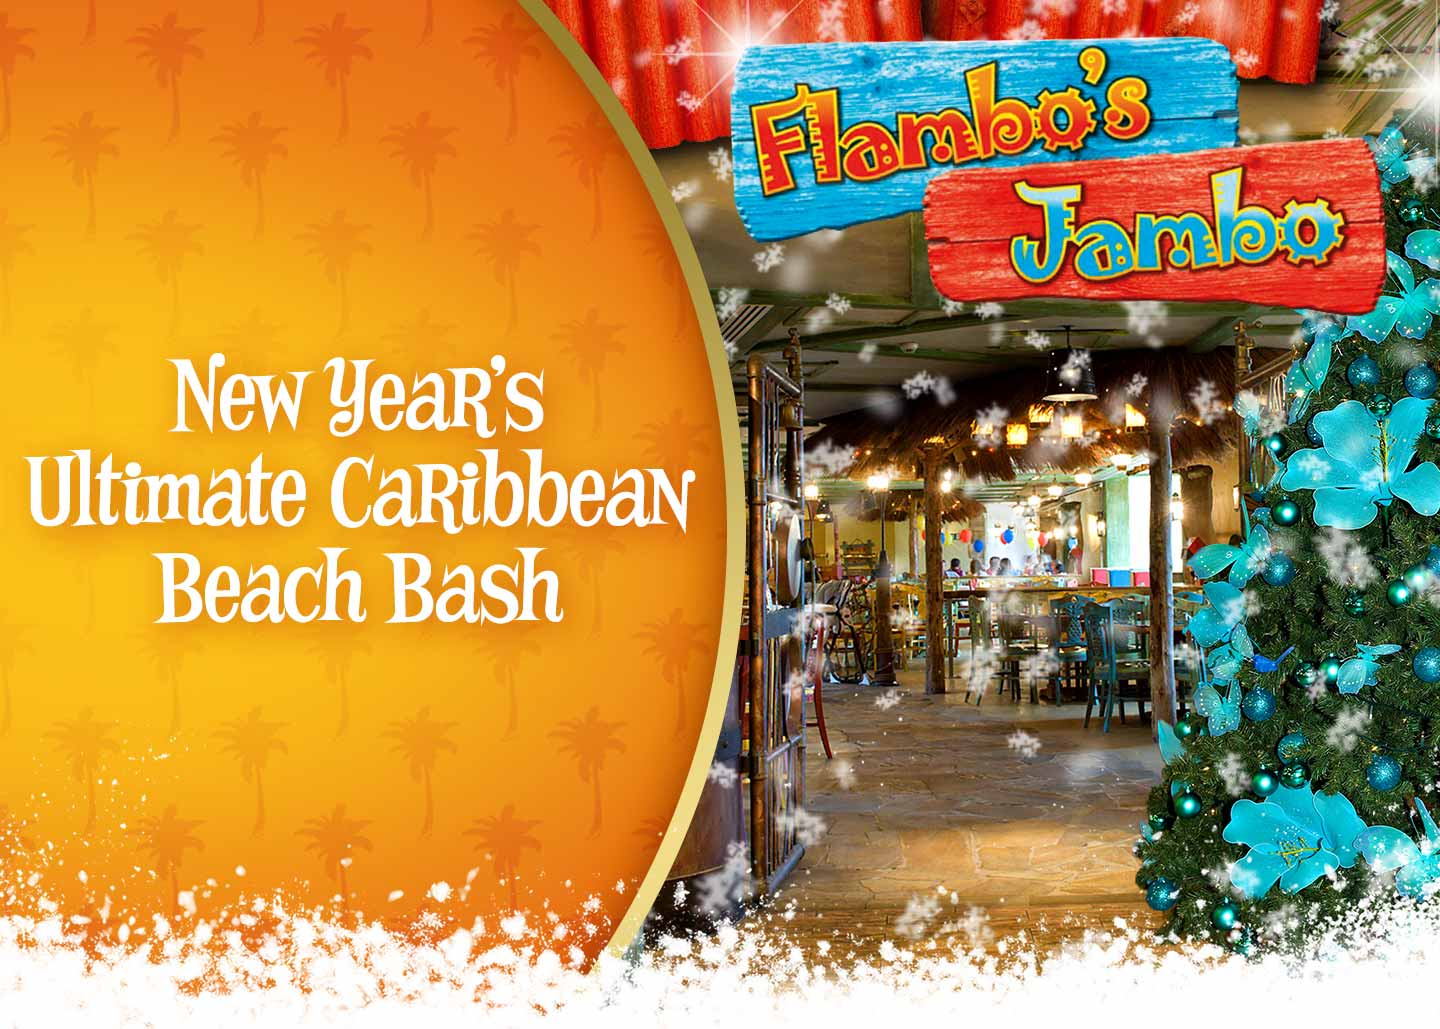 New Year's Ultimate Caribbean Beach Bash